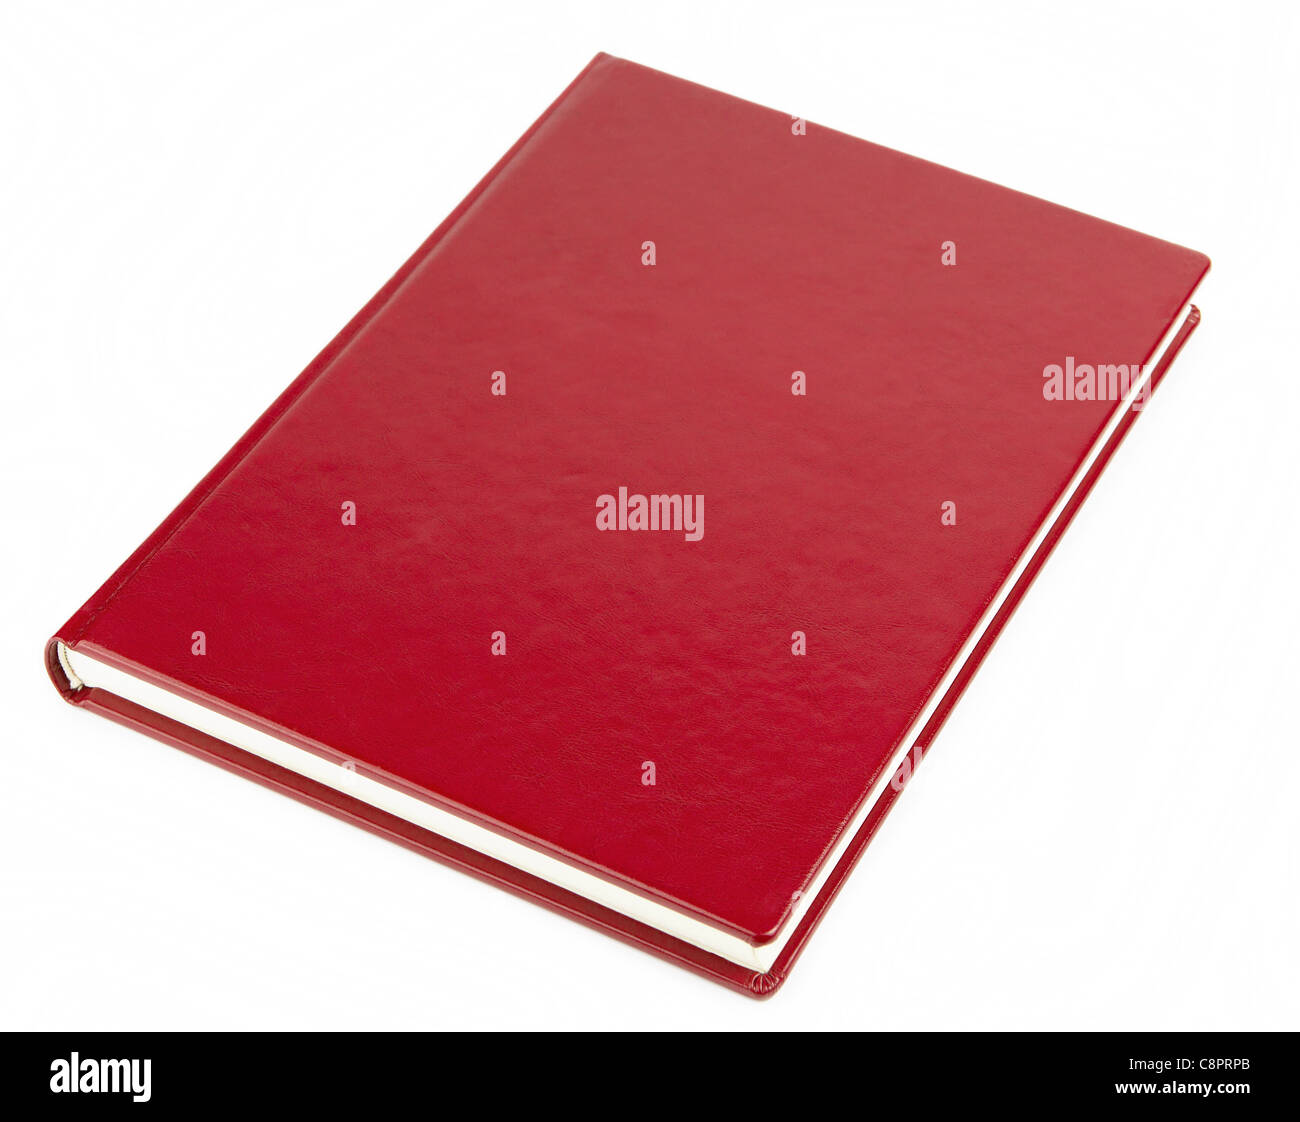 Couverture du livre rouge blanc Photo Stock